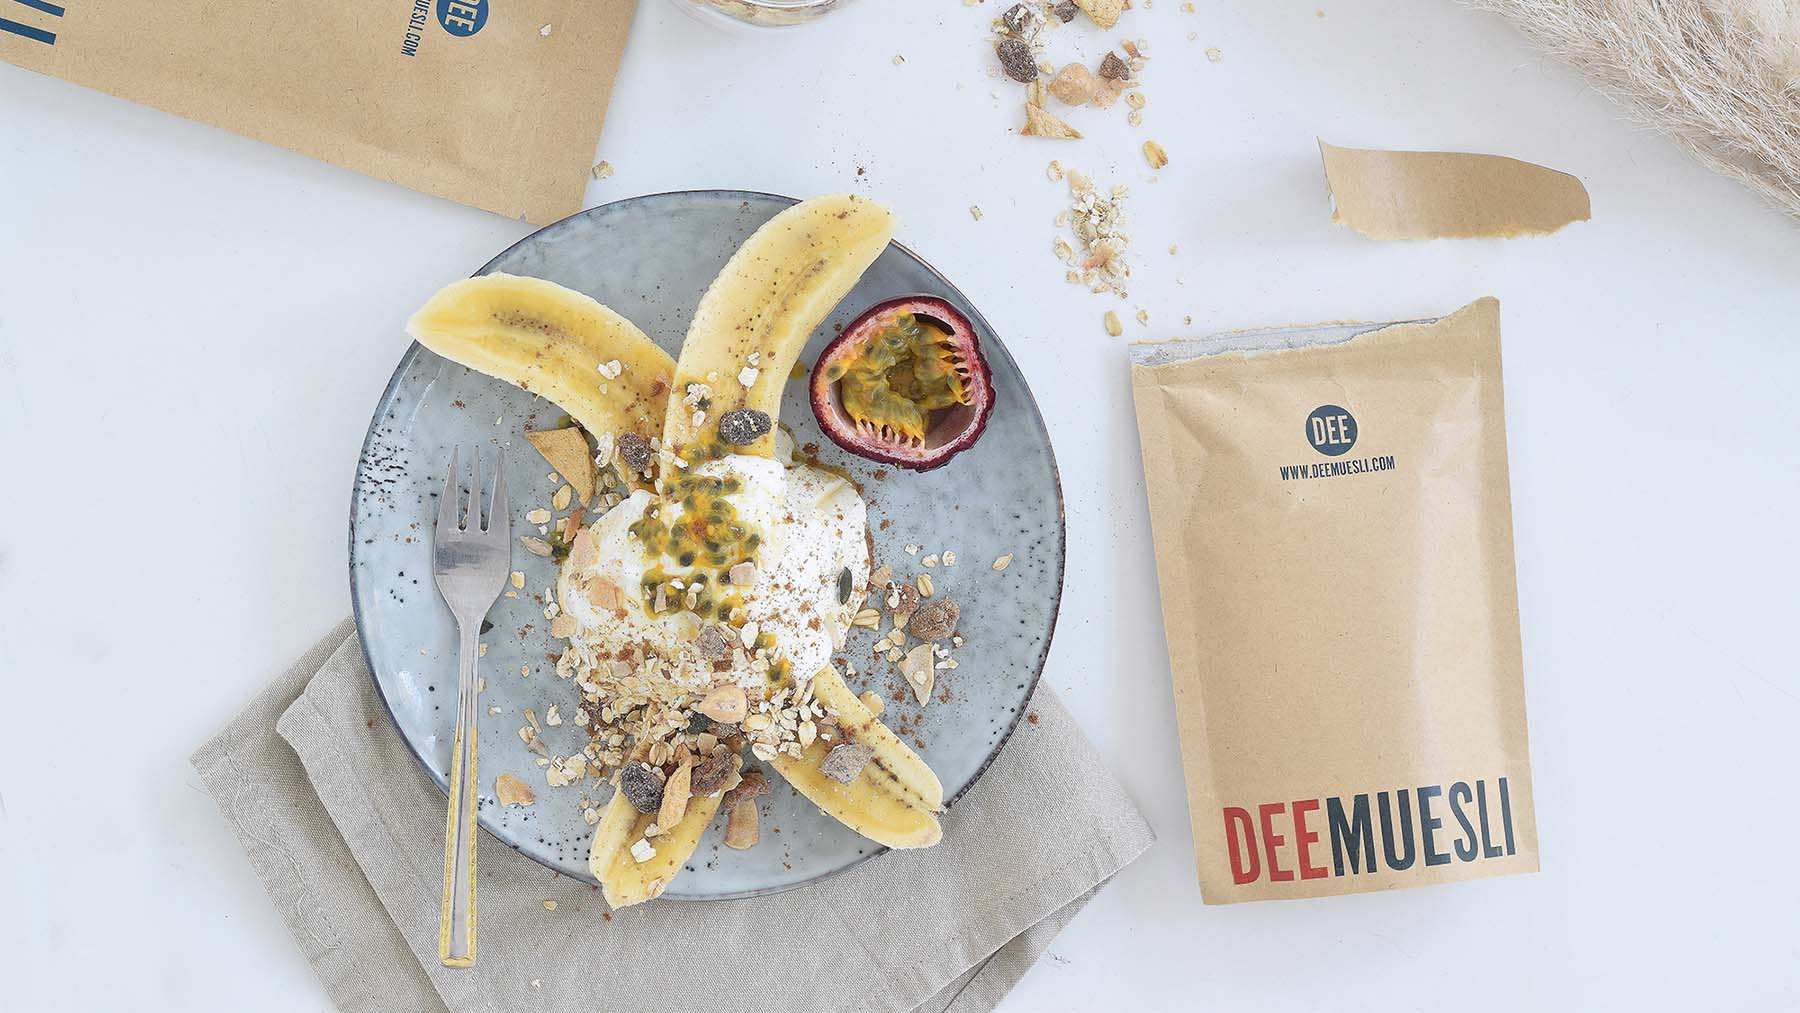 Bananasplit with DeeMuesli